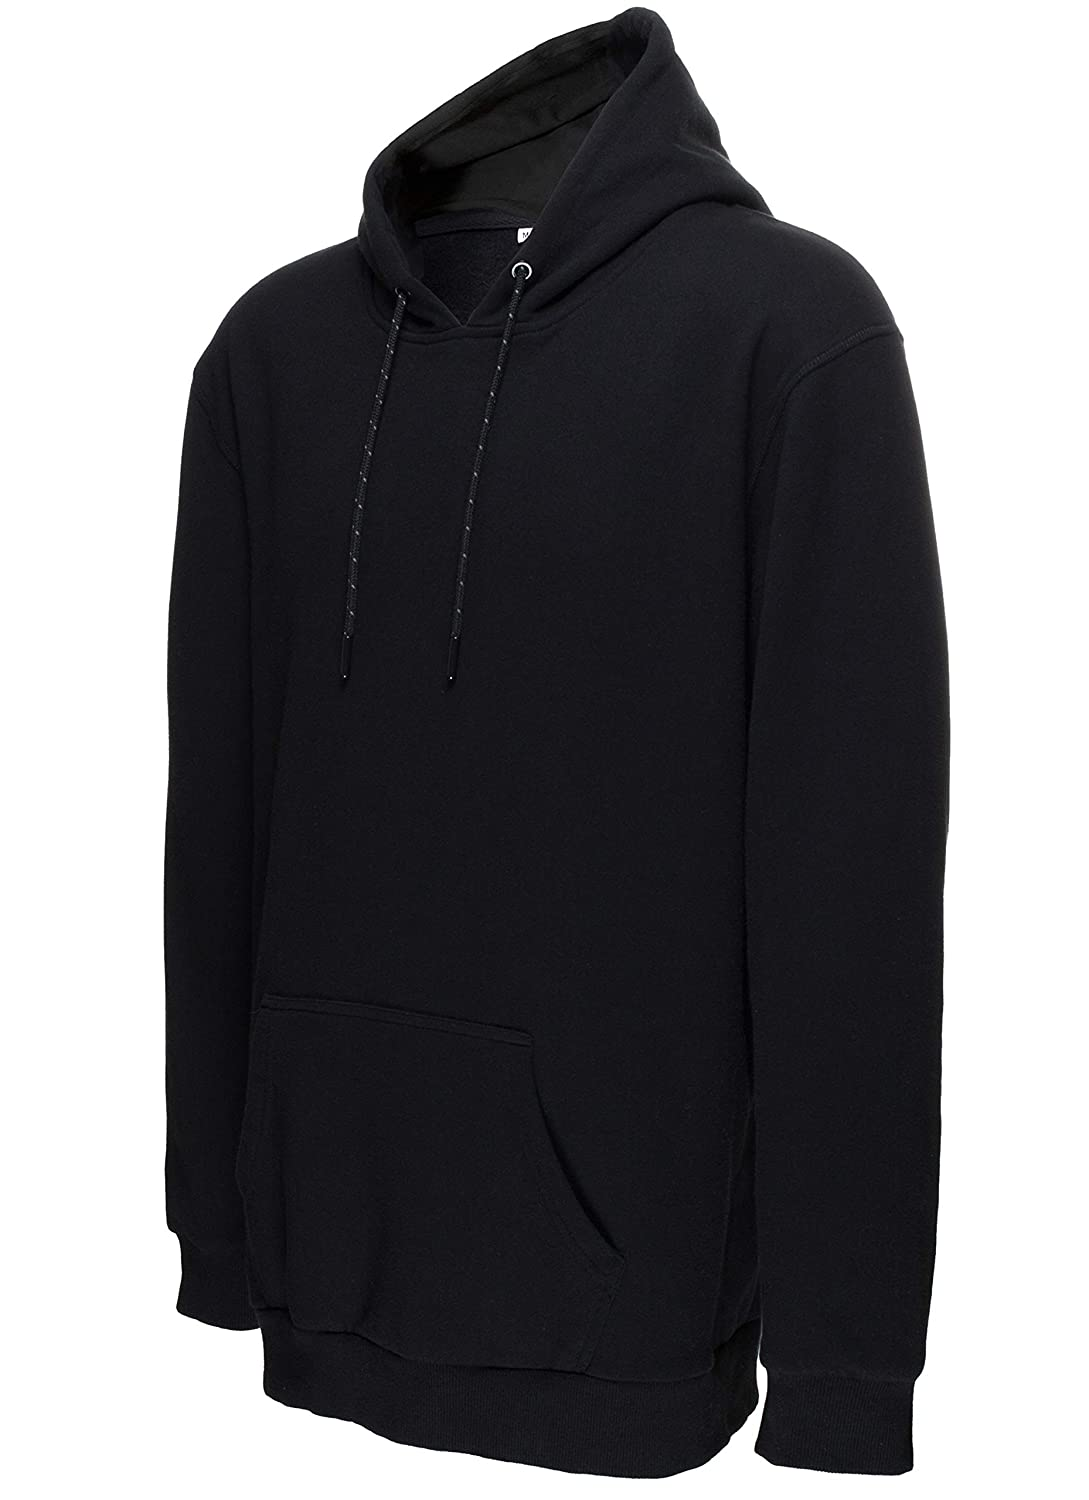 Noble Lifestyle Blank Hoodie Sweatshirt with No Branding